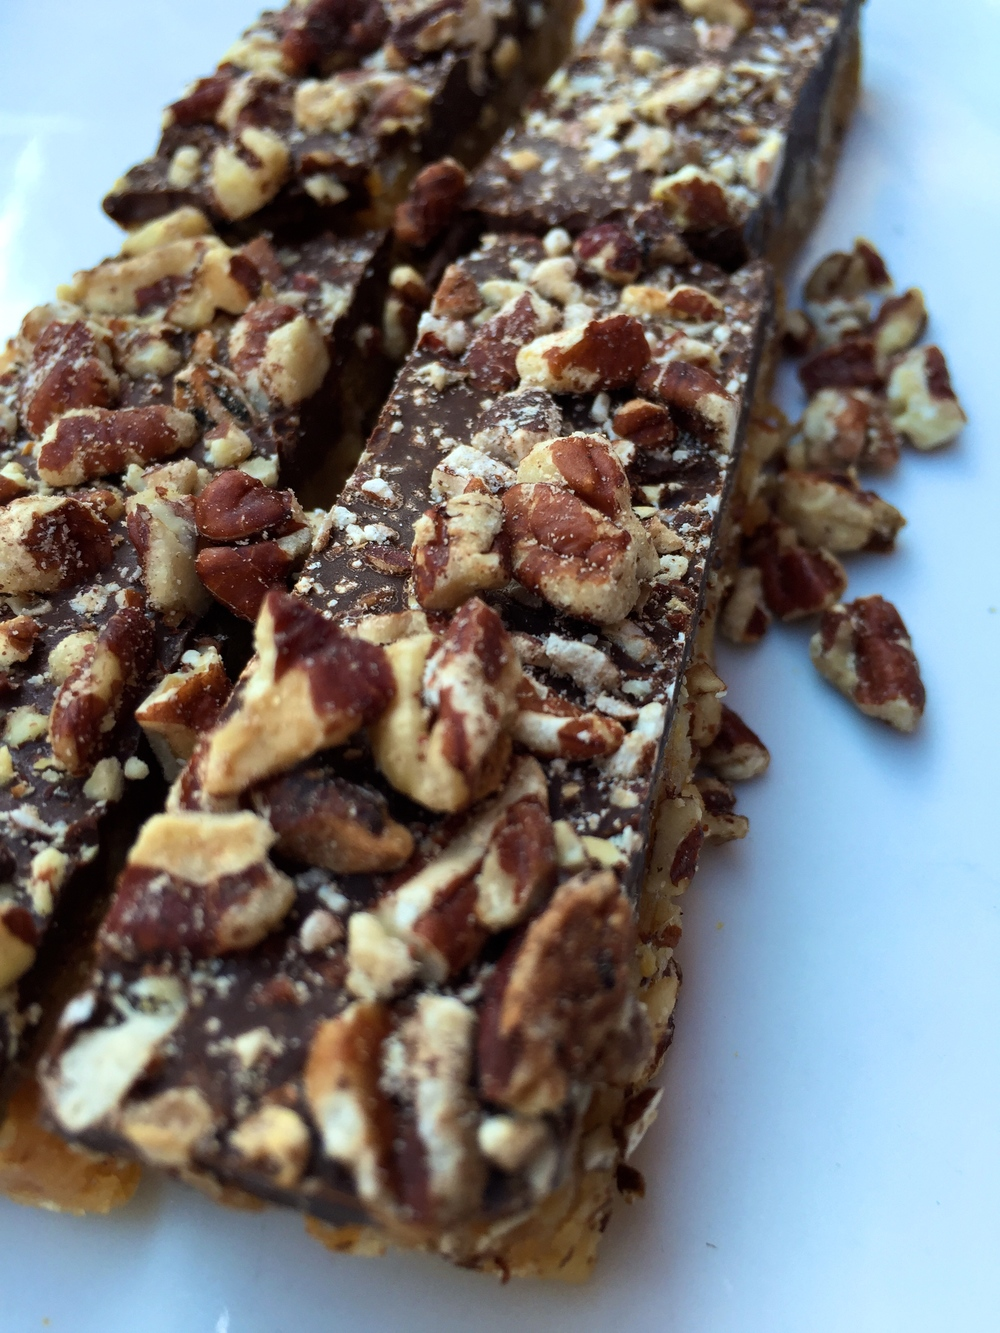 Ritz Crack Candy Bar with chocolate and pecans.